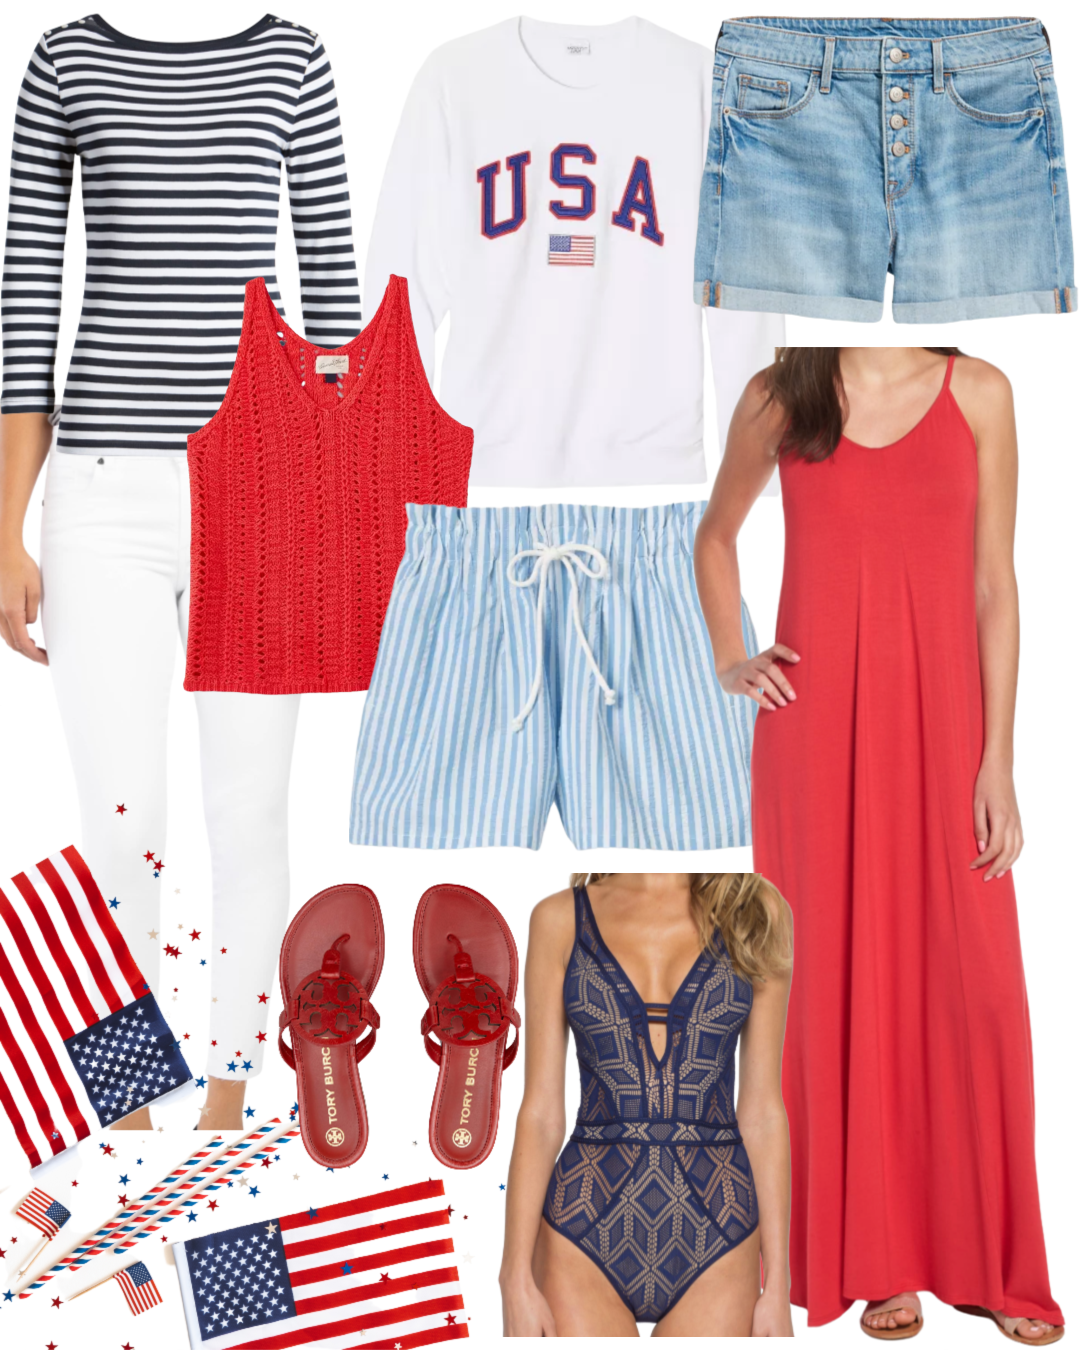 Dressing Room Finds Nordstrom and Target, Fourth of July Finds, Striped Top, USA Top, Shorts, Striped Shorts, Maxi Dress, Sweater Tank, Miller Sandals, Becca Swimsuit